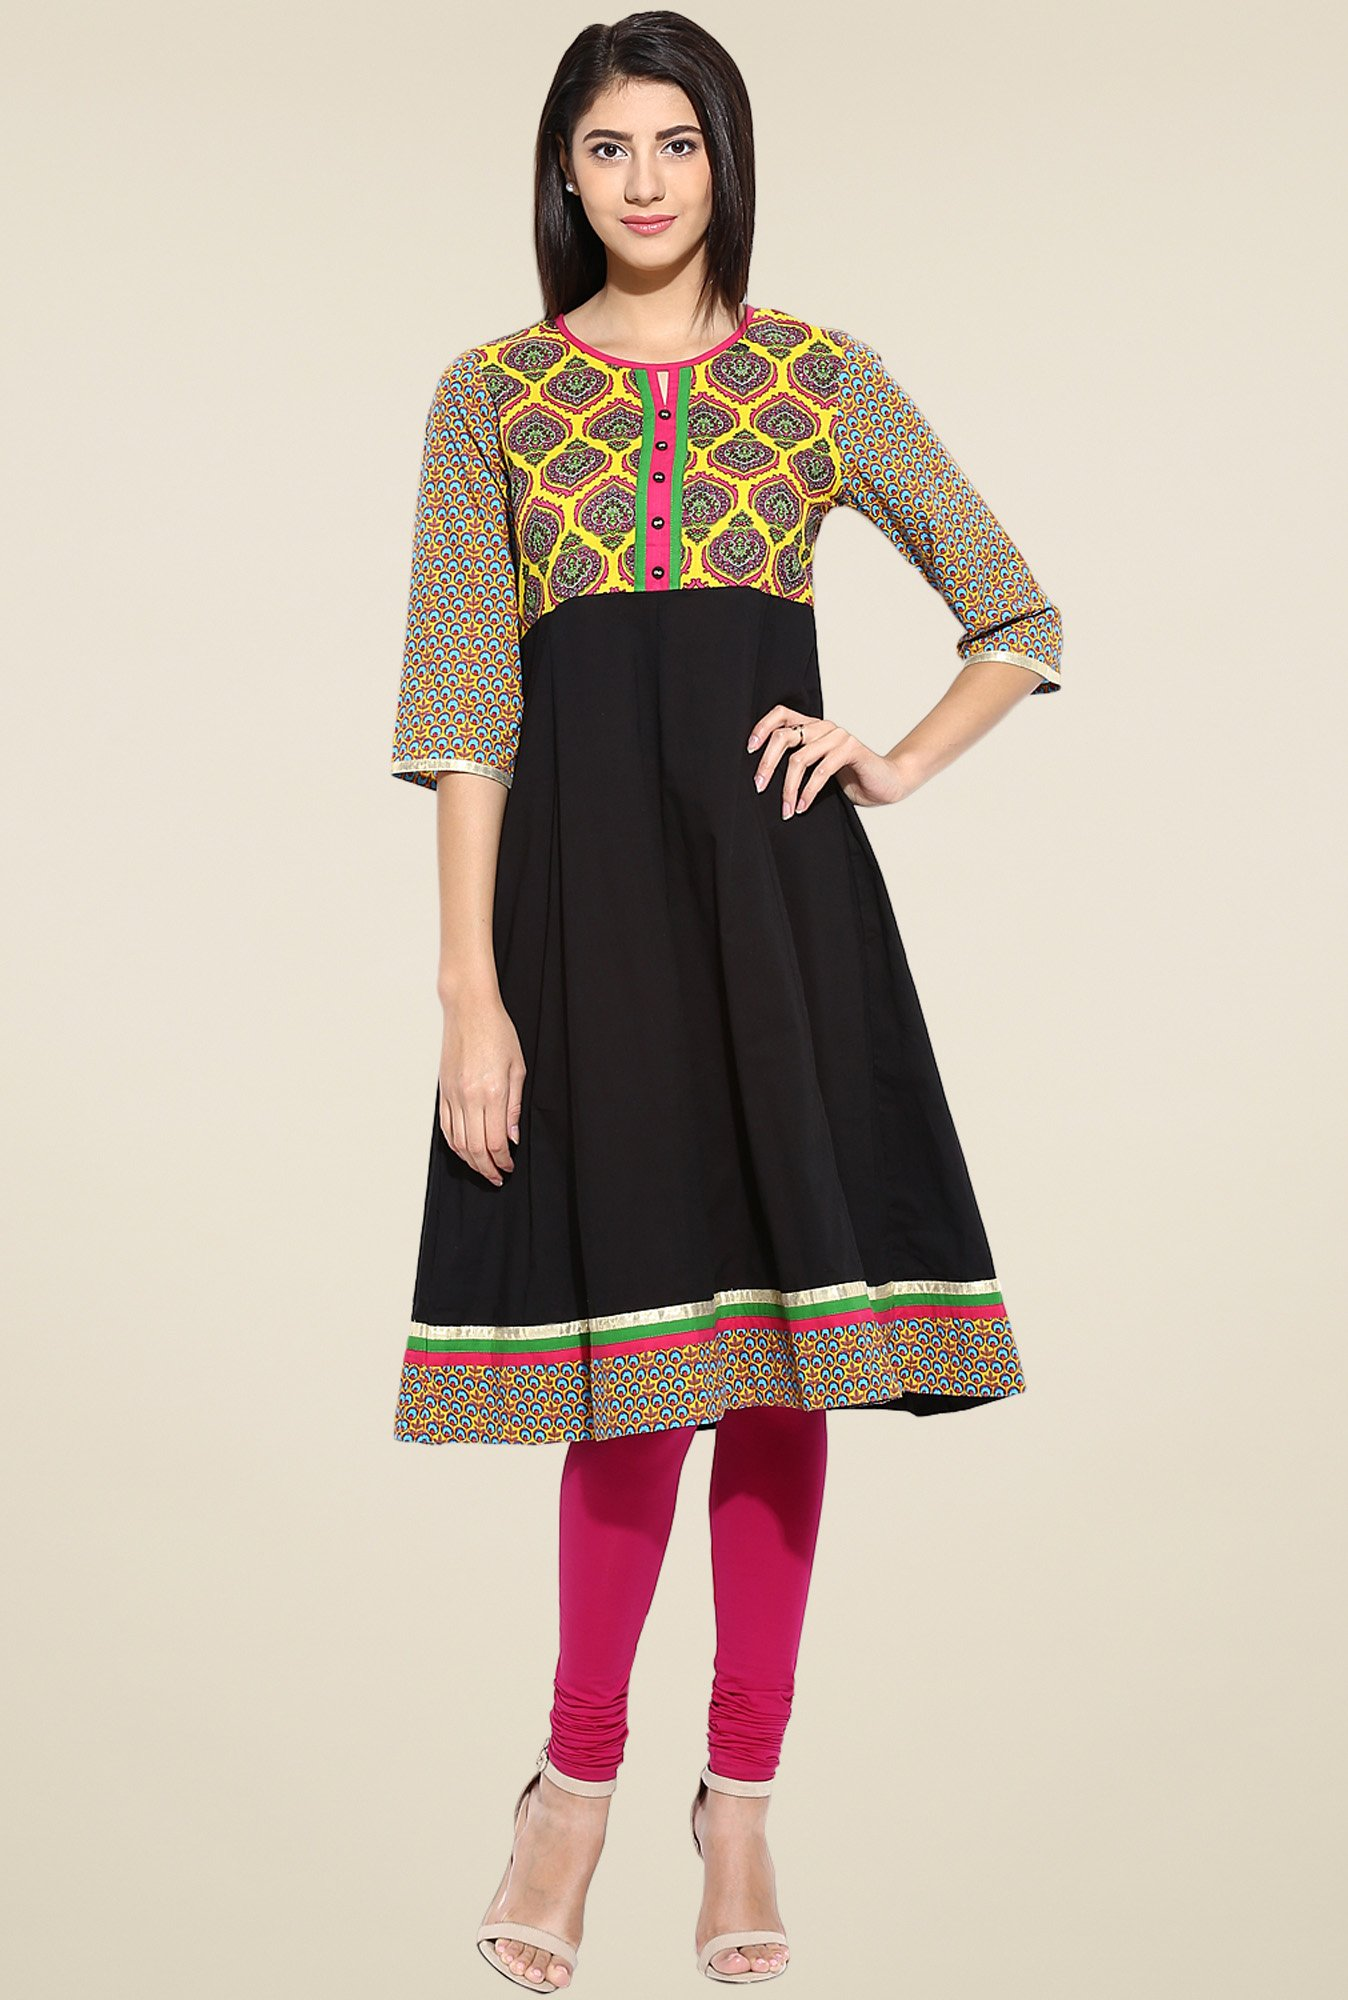 Evam Black Cotton Anarkali Long Kurta